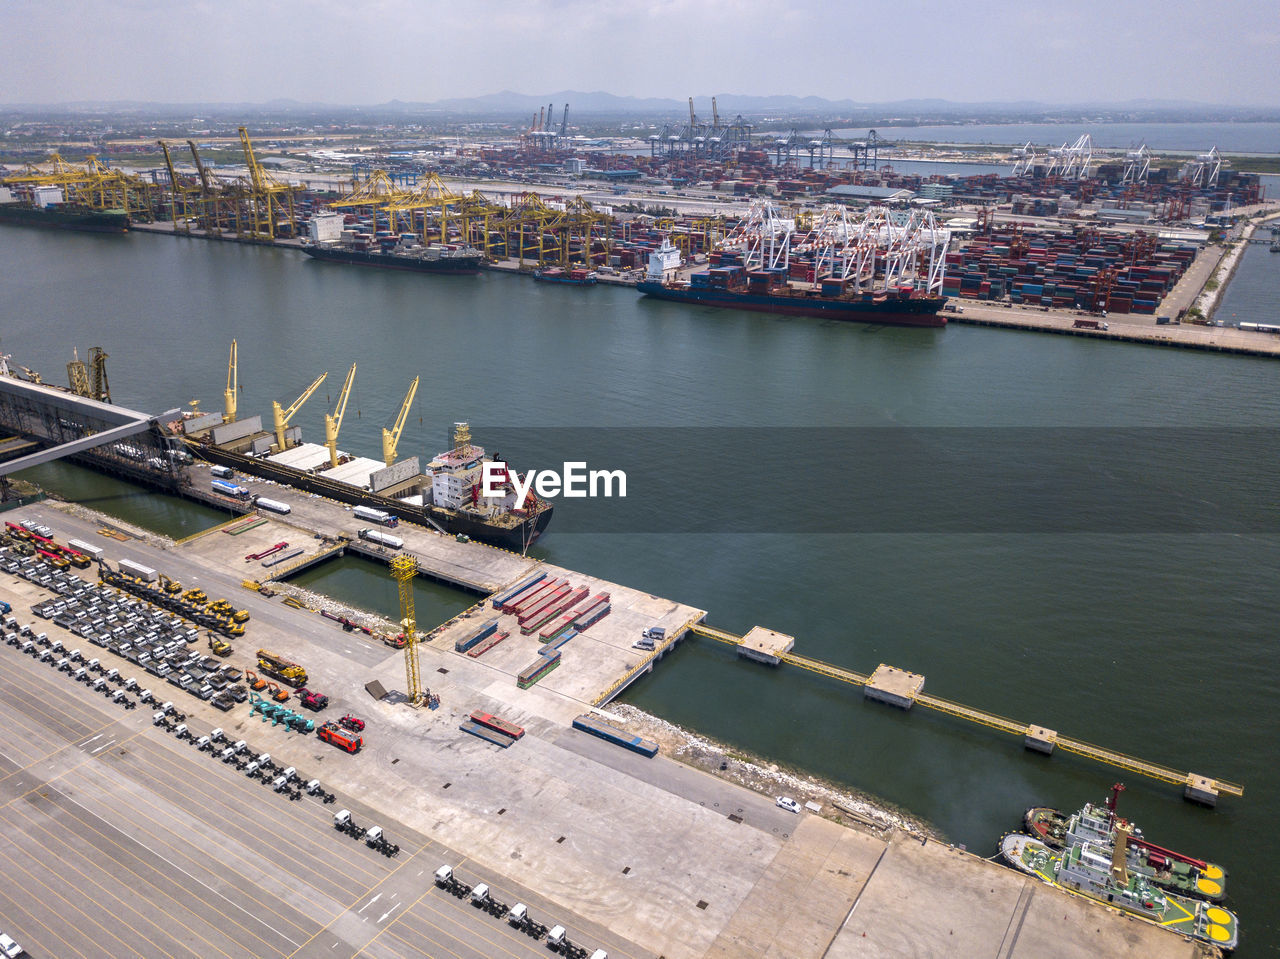 transportation, water, nautical vessel, high angle view, mode of transportation, architecture, day, building exterior, harbor, built structure, river, freight transportation, nature, city, industry, shipping, travel, outdoors, ship, no people, cityscape